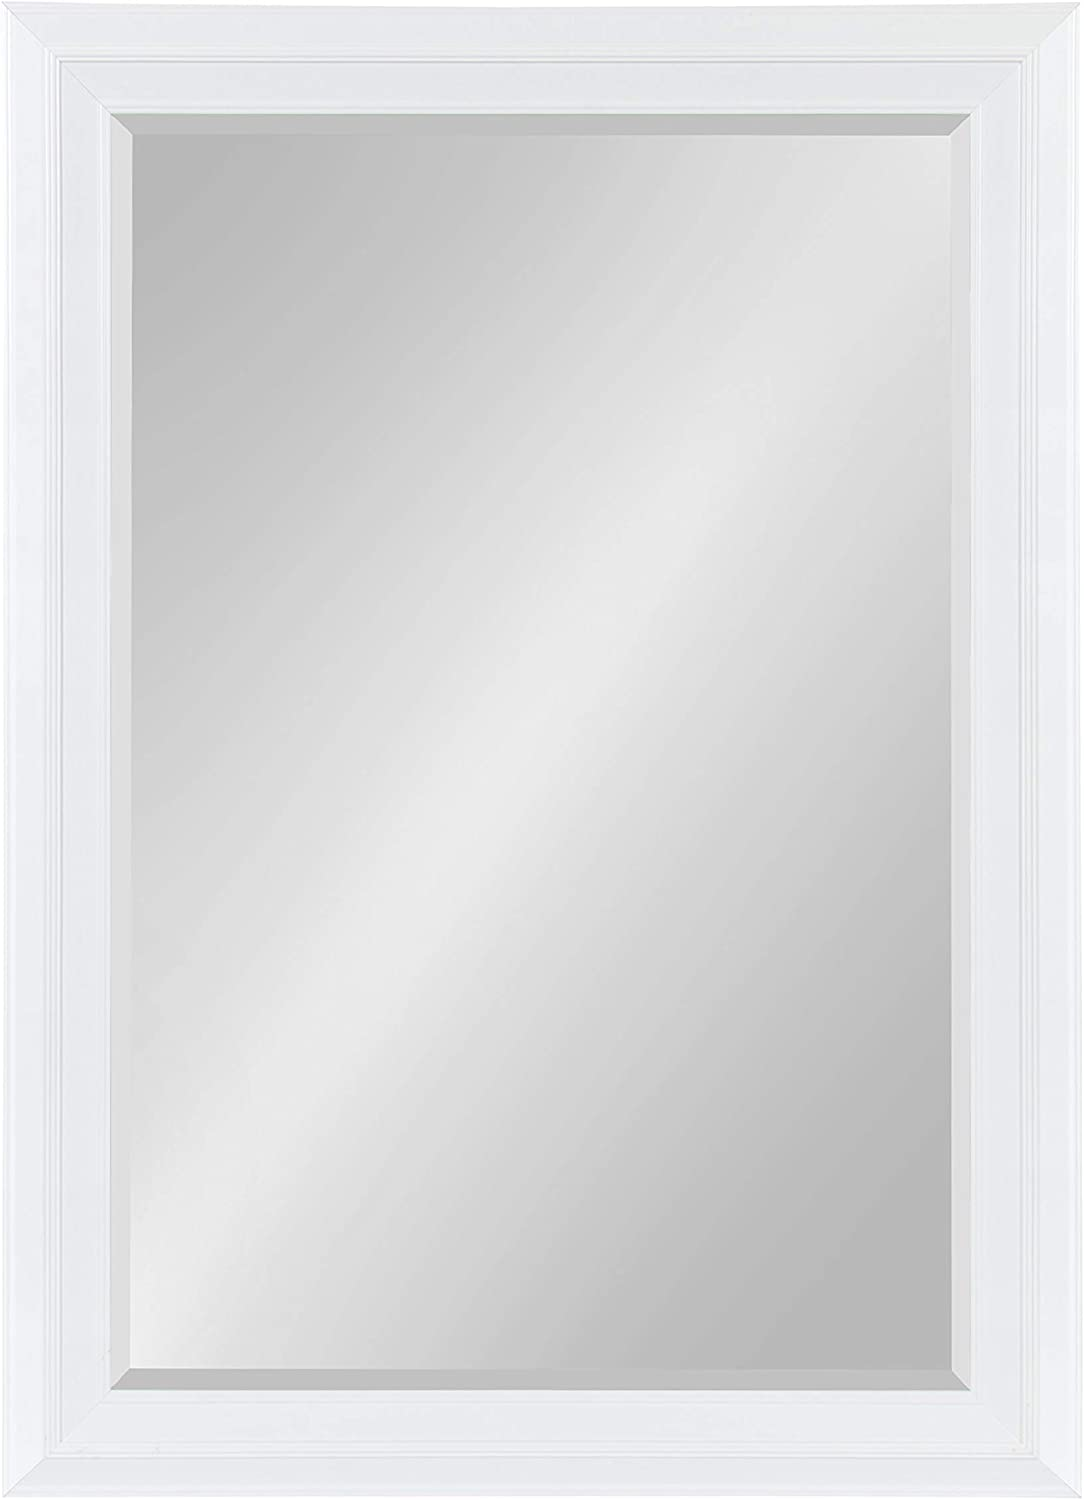 Kate and Laurel Whitley Framed Wall Mirror, 29.5x41.5, White